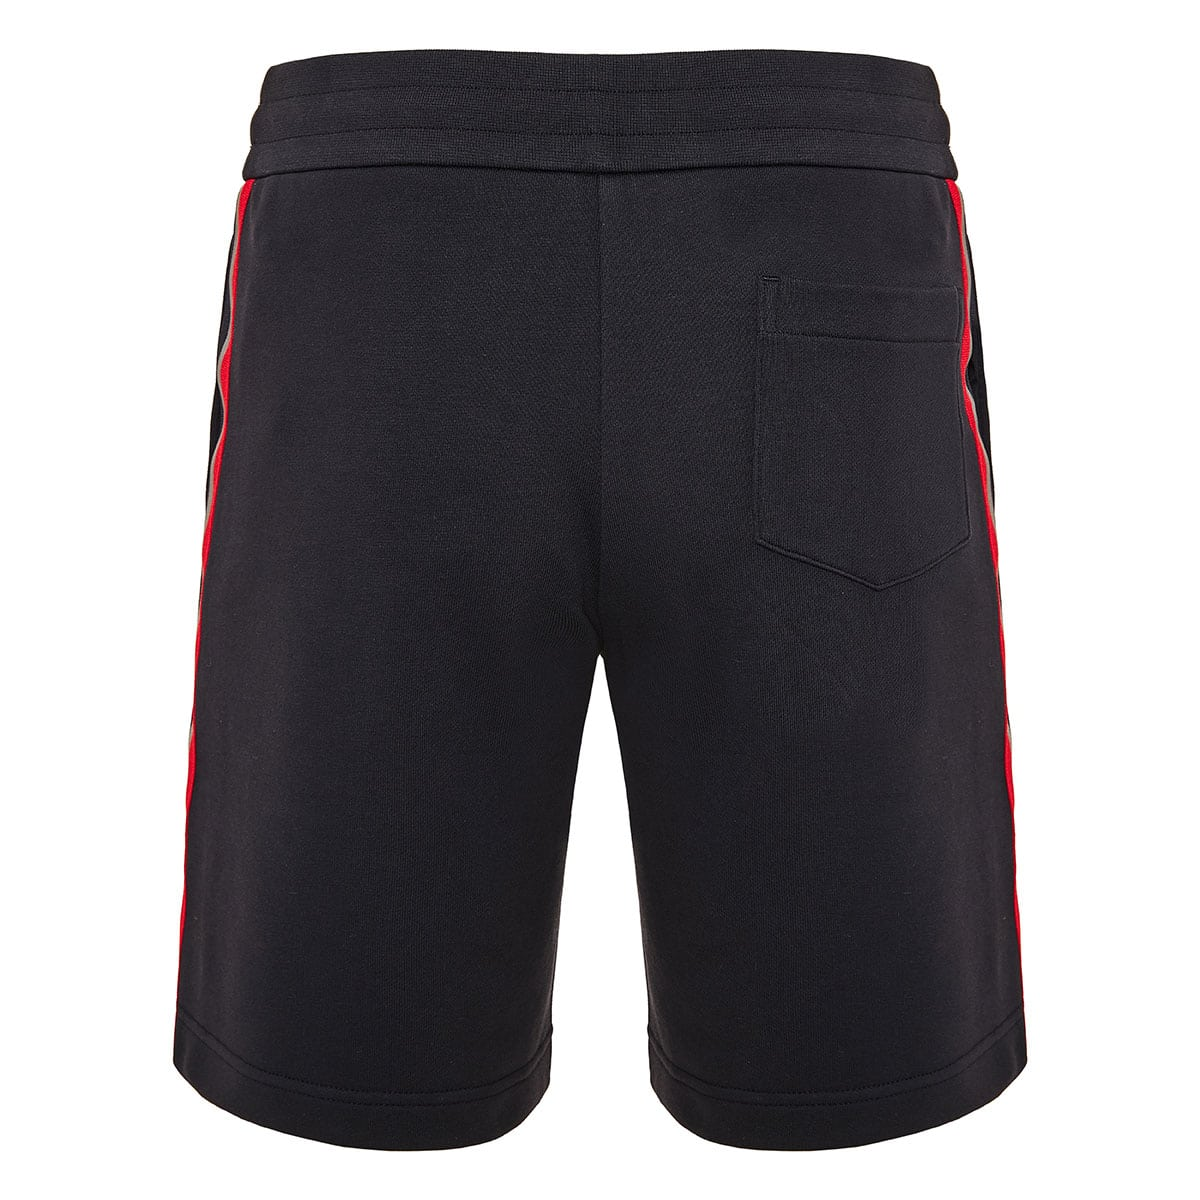 Striped bands track shorts